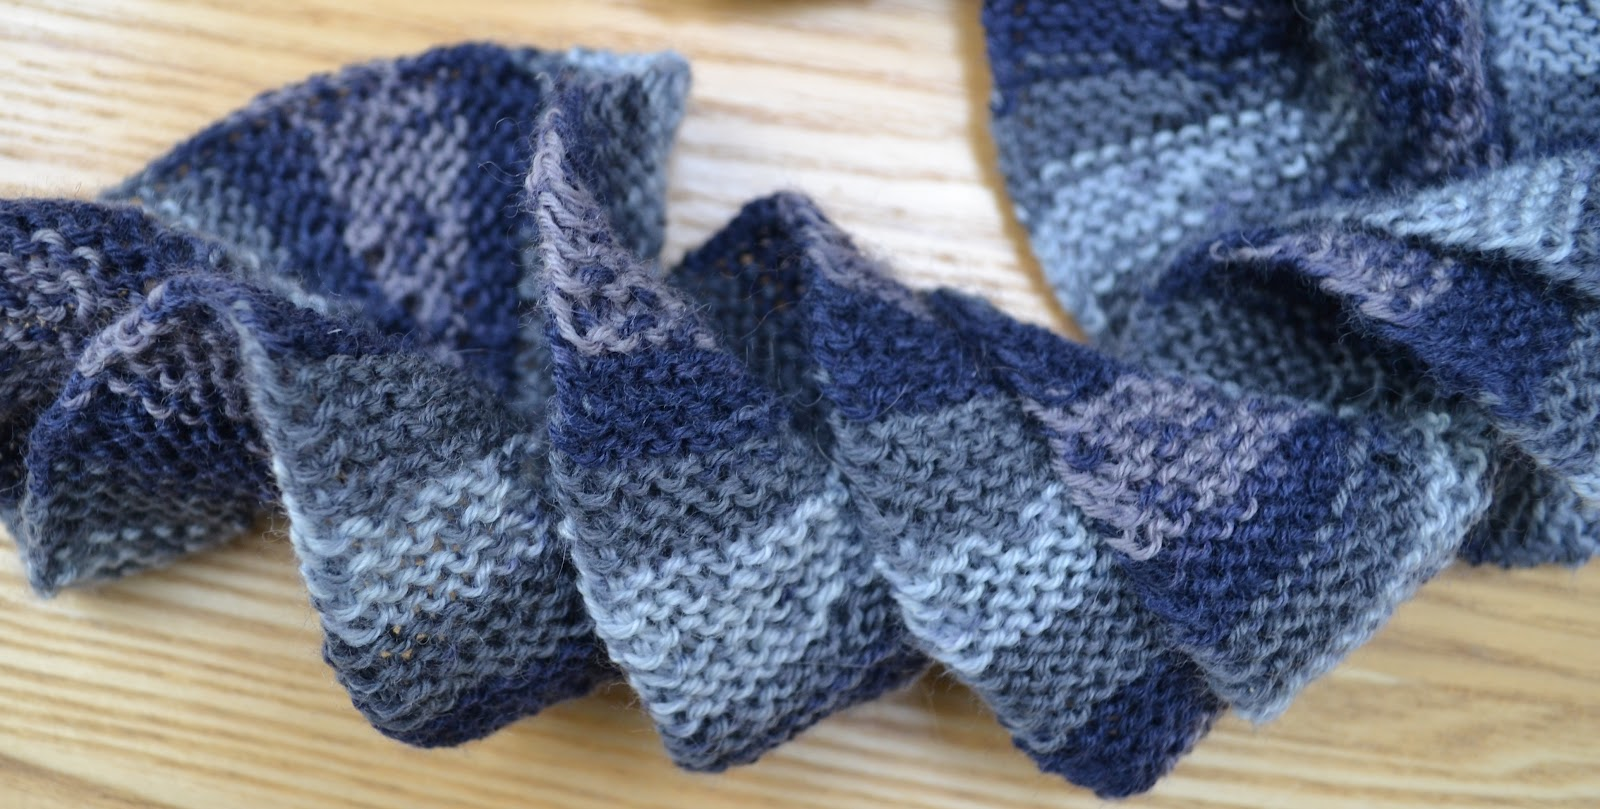 Knitting Pattern For Potato Chip Scarf : Ginx Craft: The Potato Chip Scarf